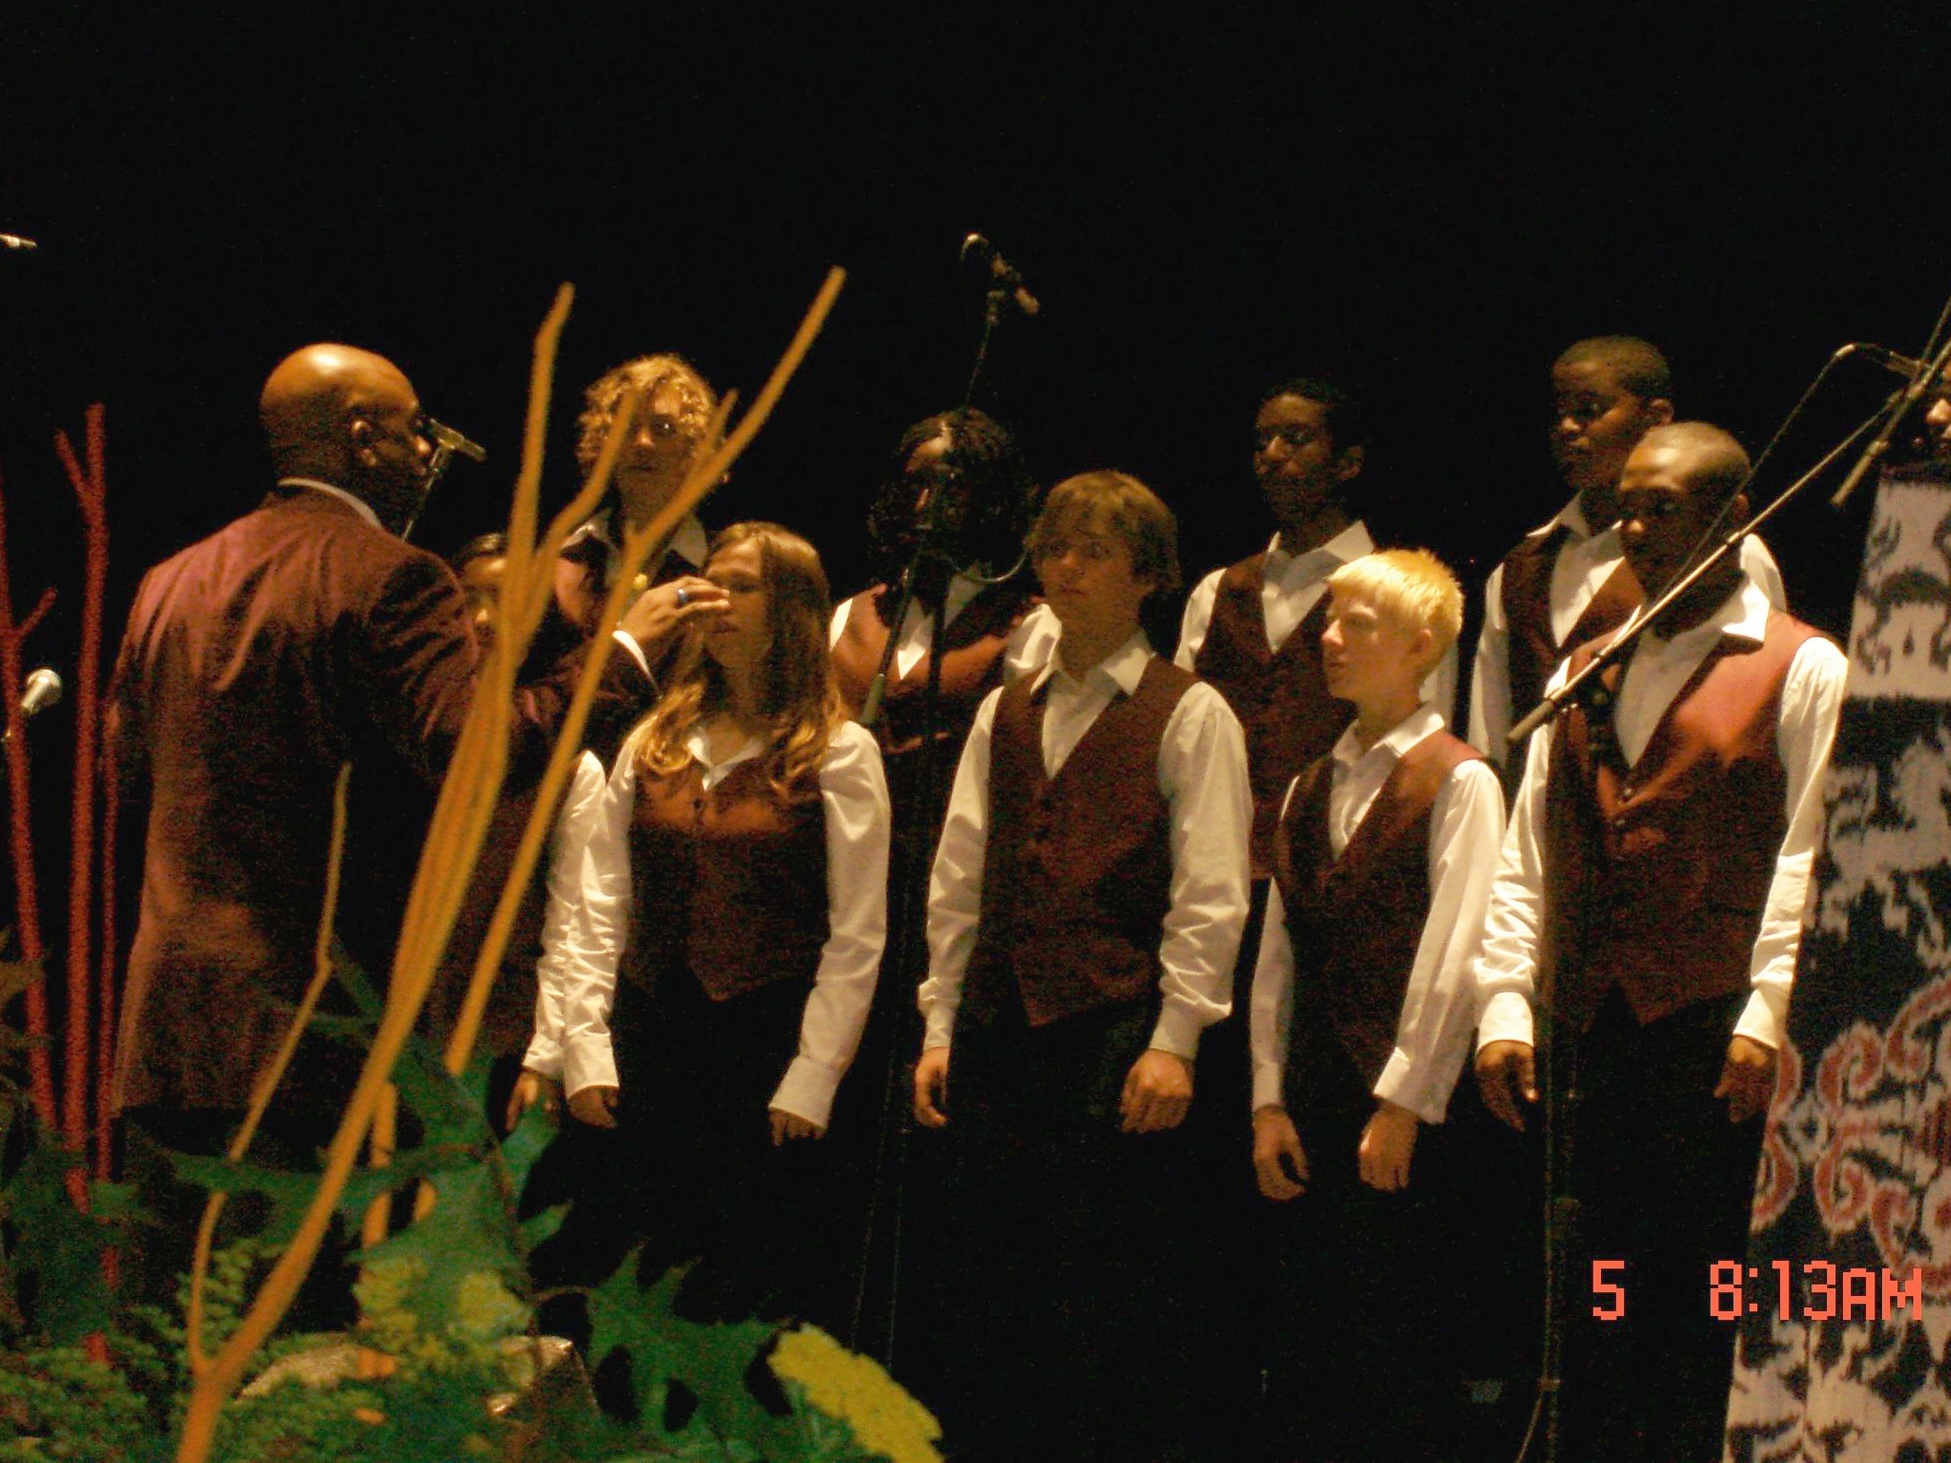 Dan performing with the Oakland Interfaith Youth Gospel Choir